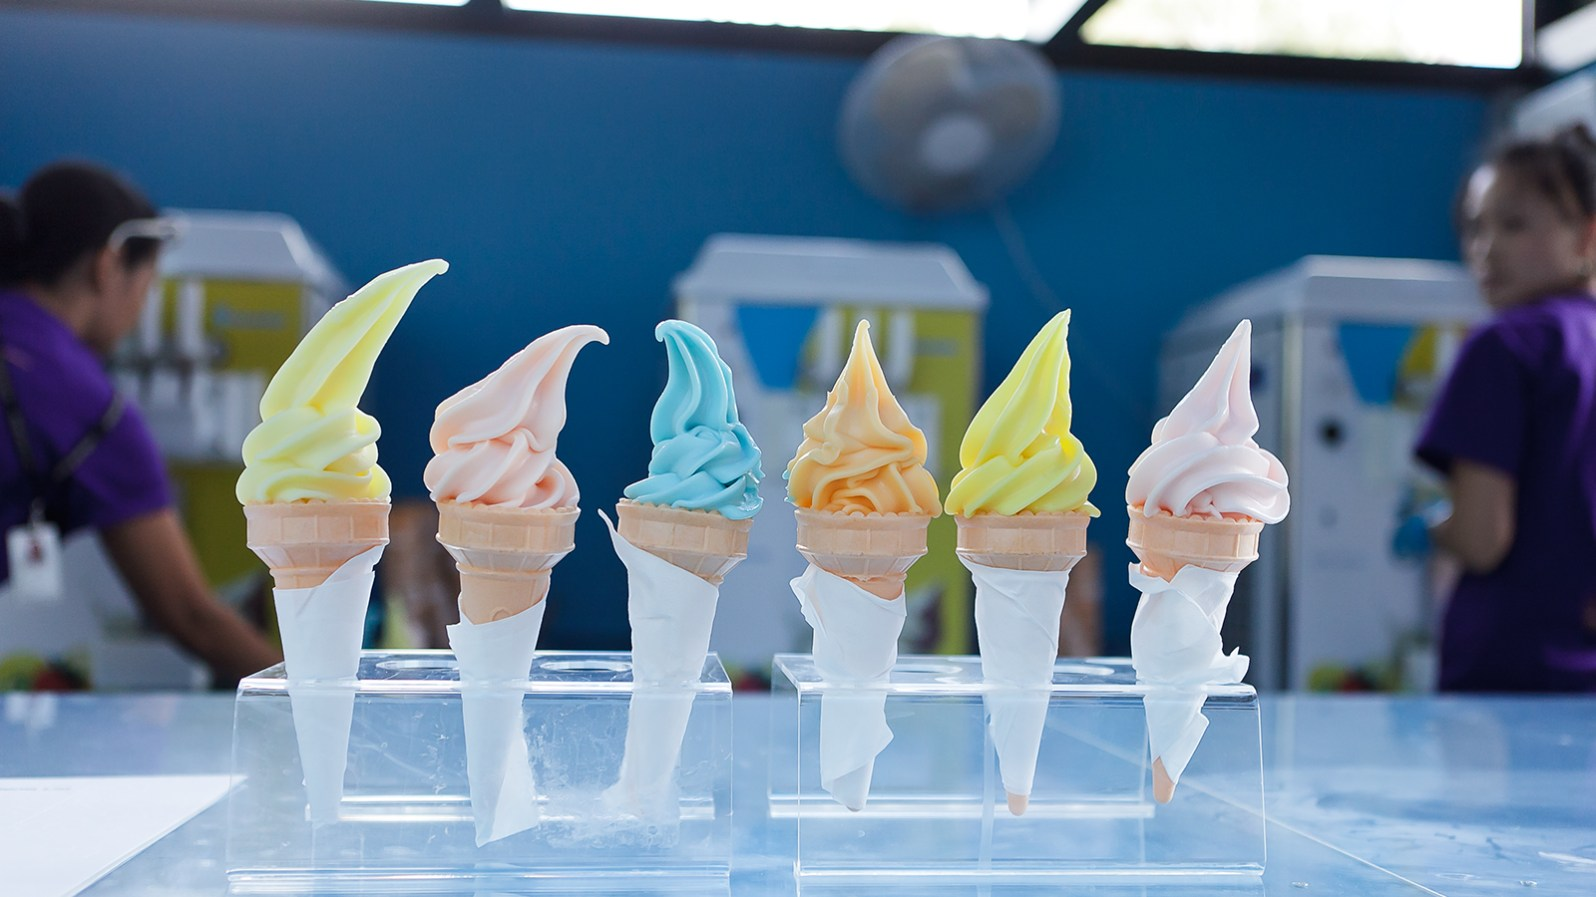 Spencer Finch's sunset ice creams. (Courtesy of Spencer Finch)